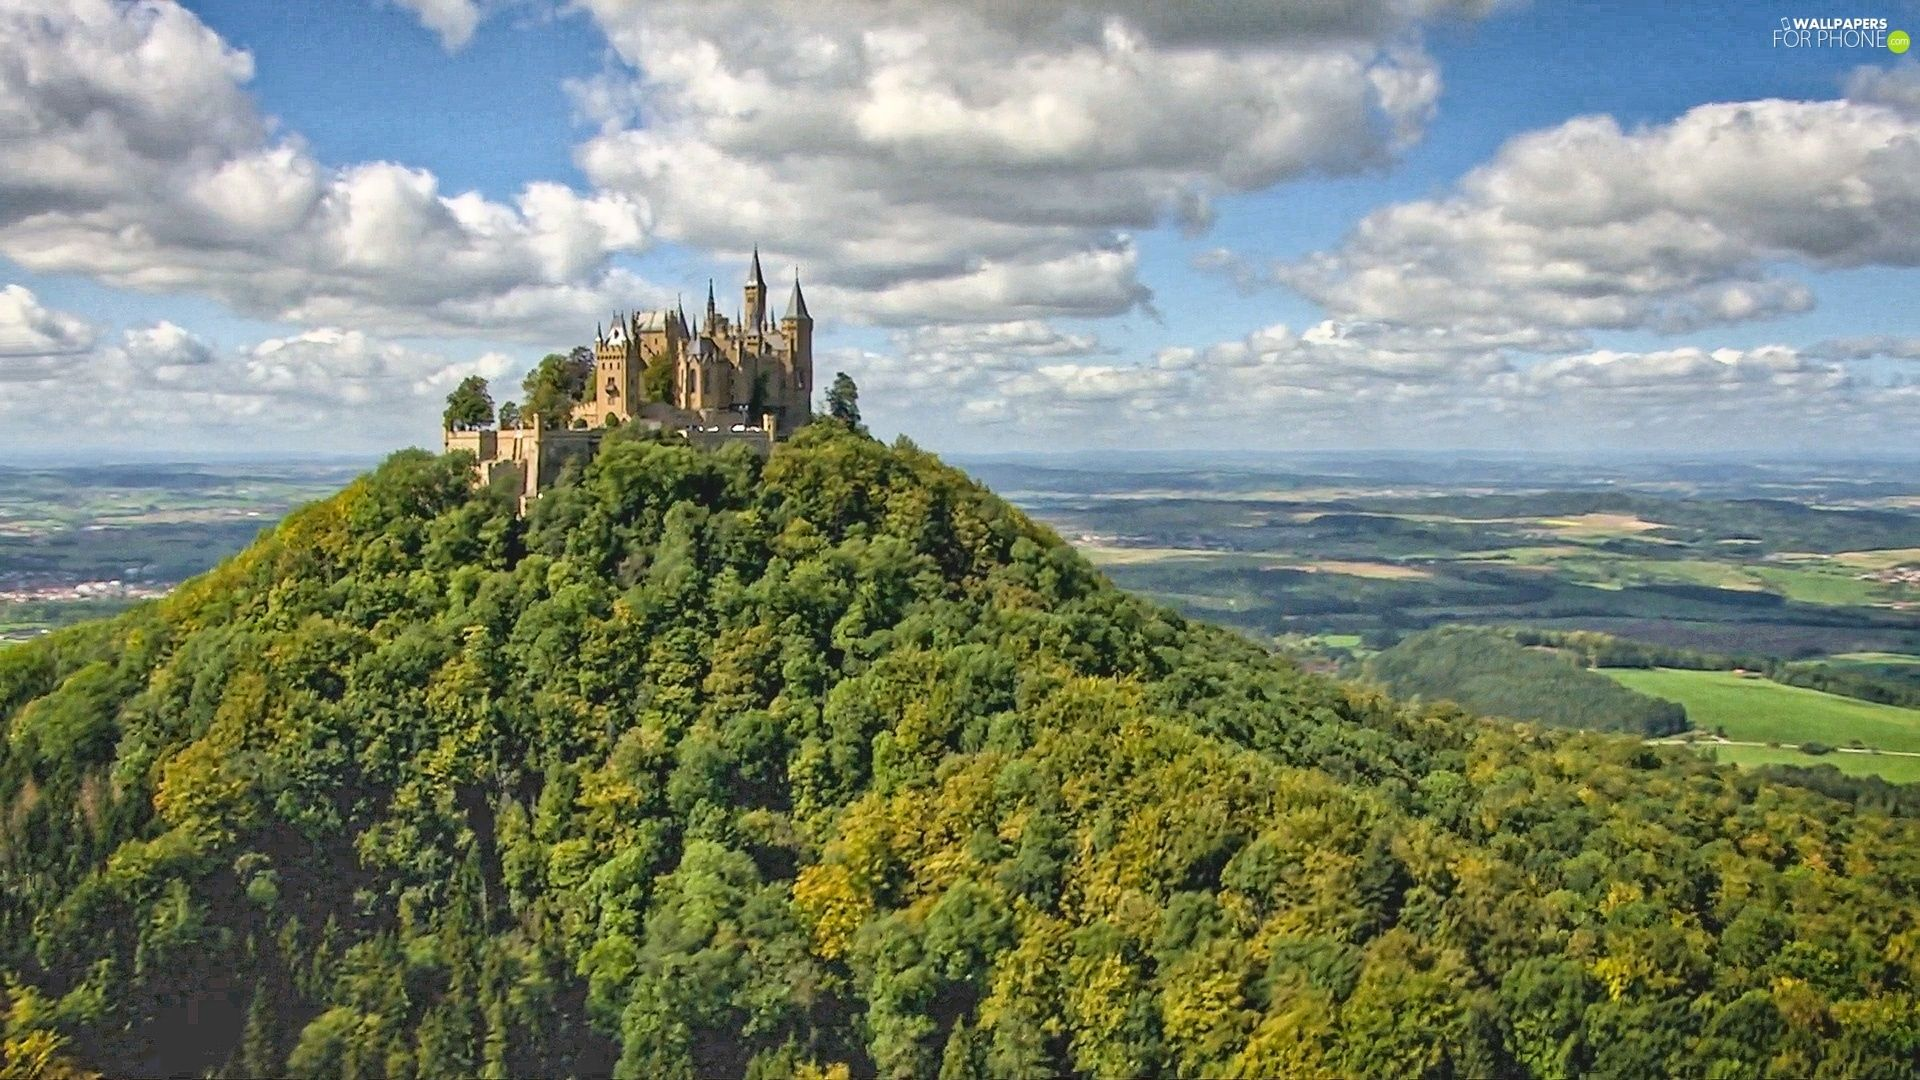 Burg Hohenzollern Germany Castle For Phone Wallpapers 1920x1080 Hohenzollern Castle Castle Pictures